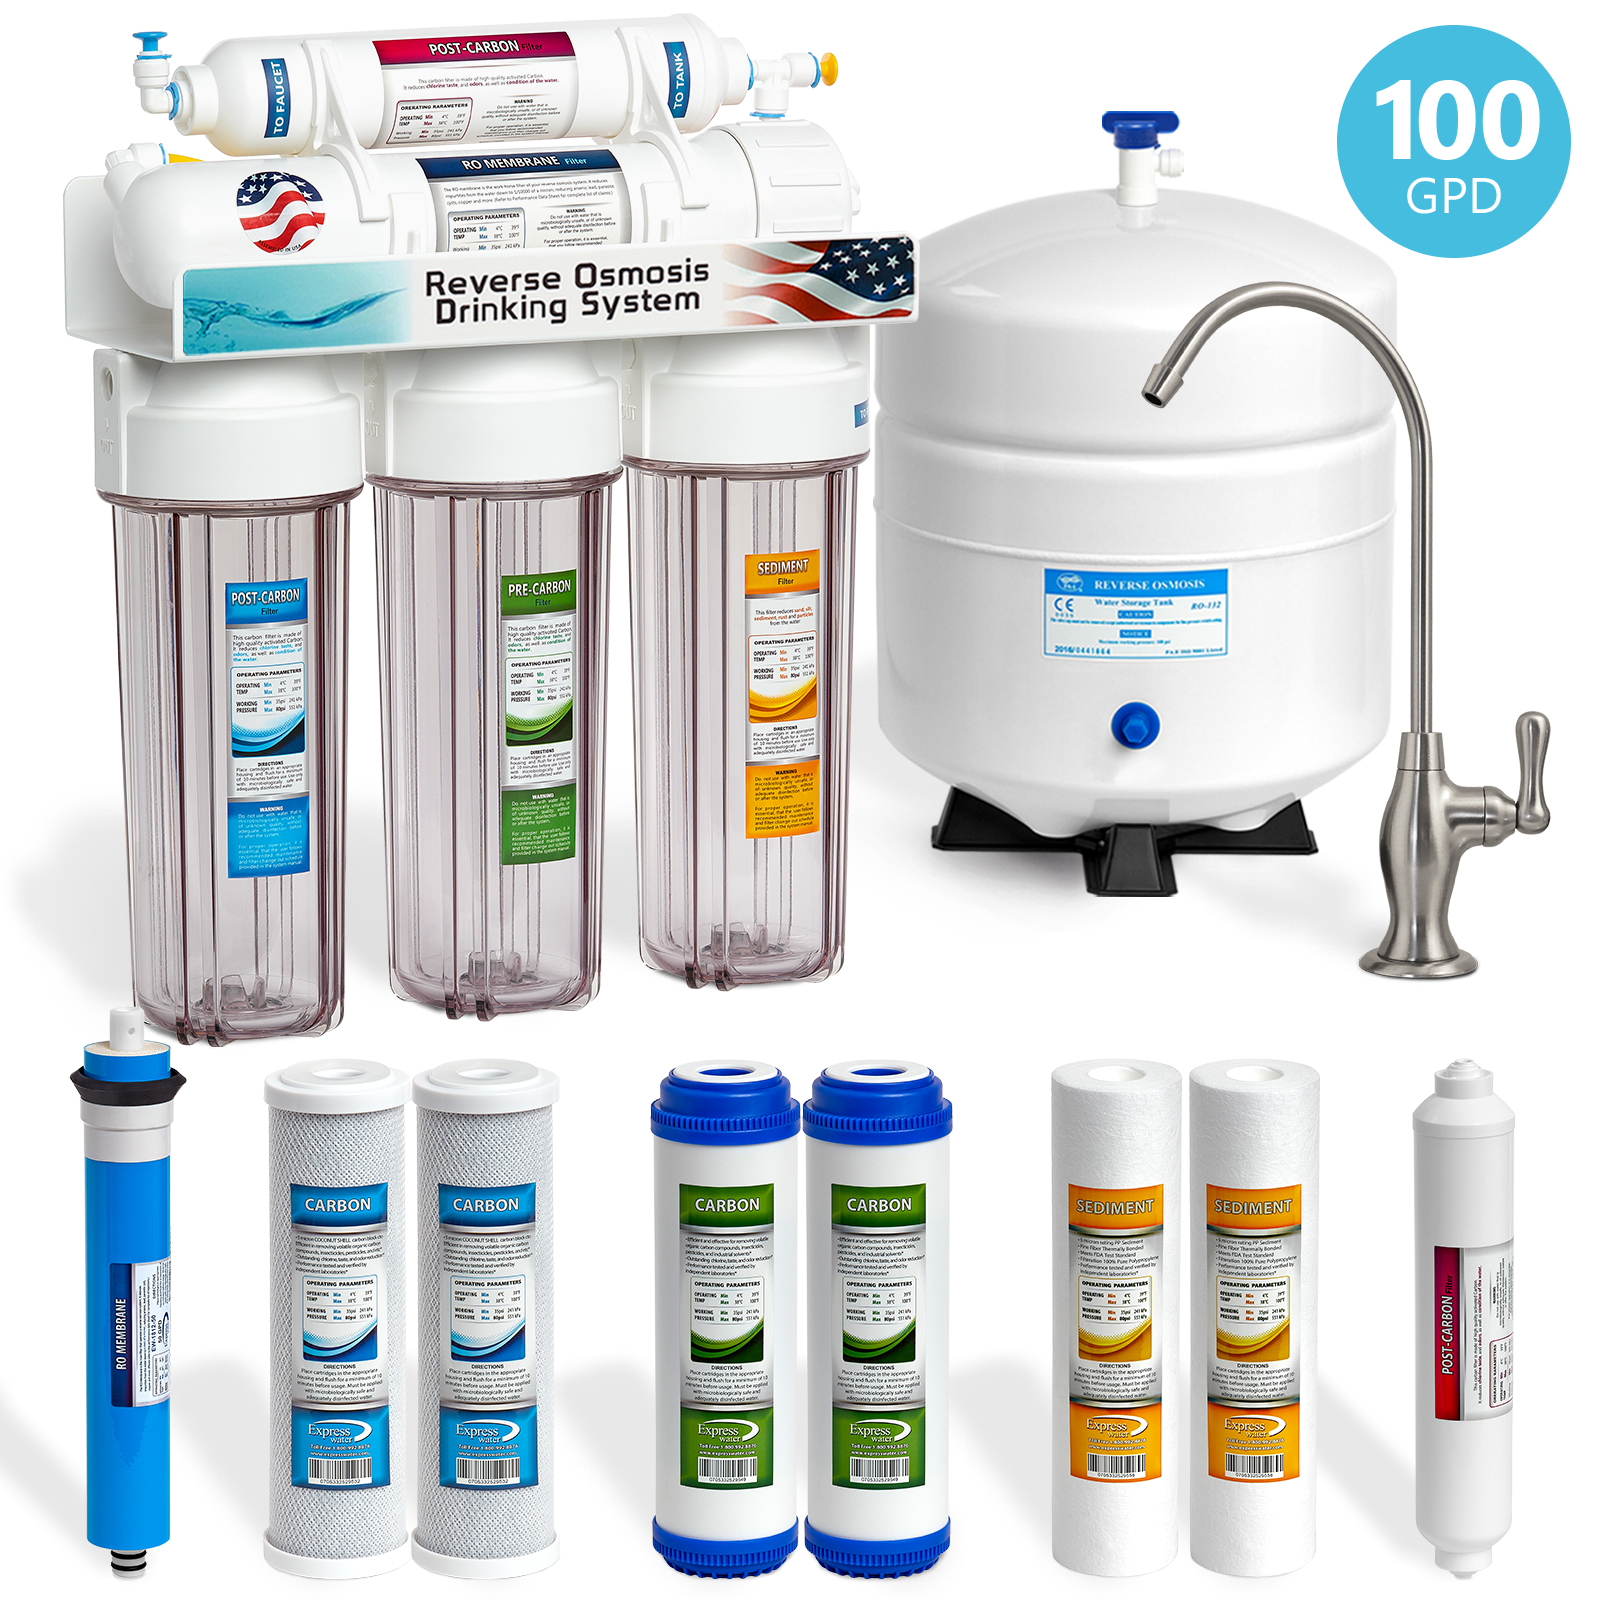 Express Water 5-Stage Under Sink Reverse Osmosis RO Drinking Water Filter System, Clear, 100 GPD, Brushed Nickel (Deluxe)